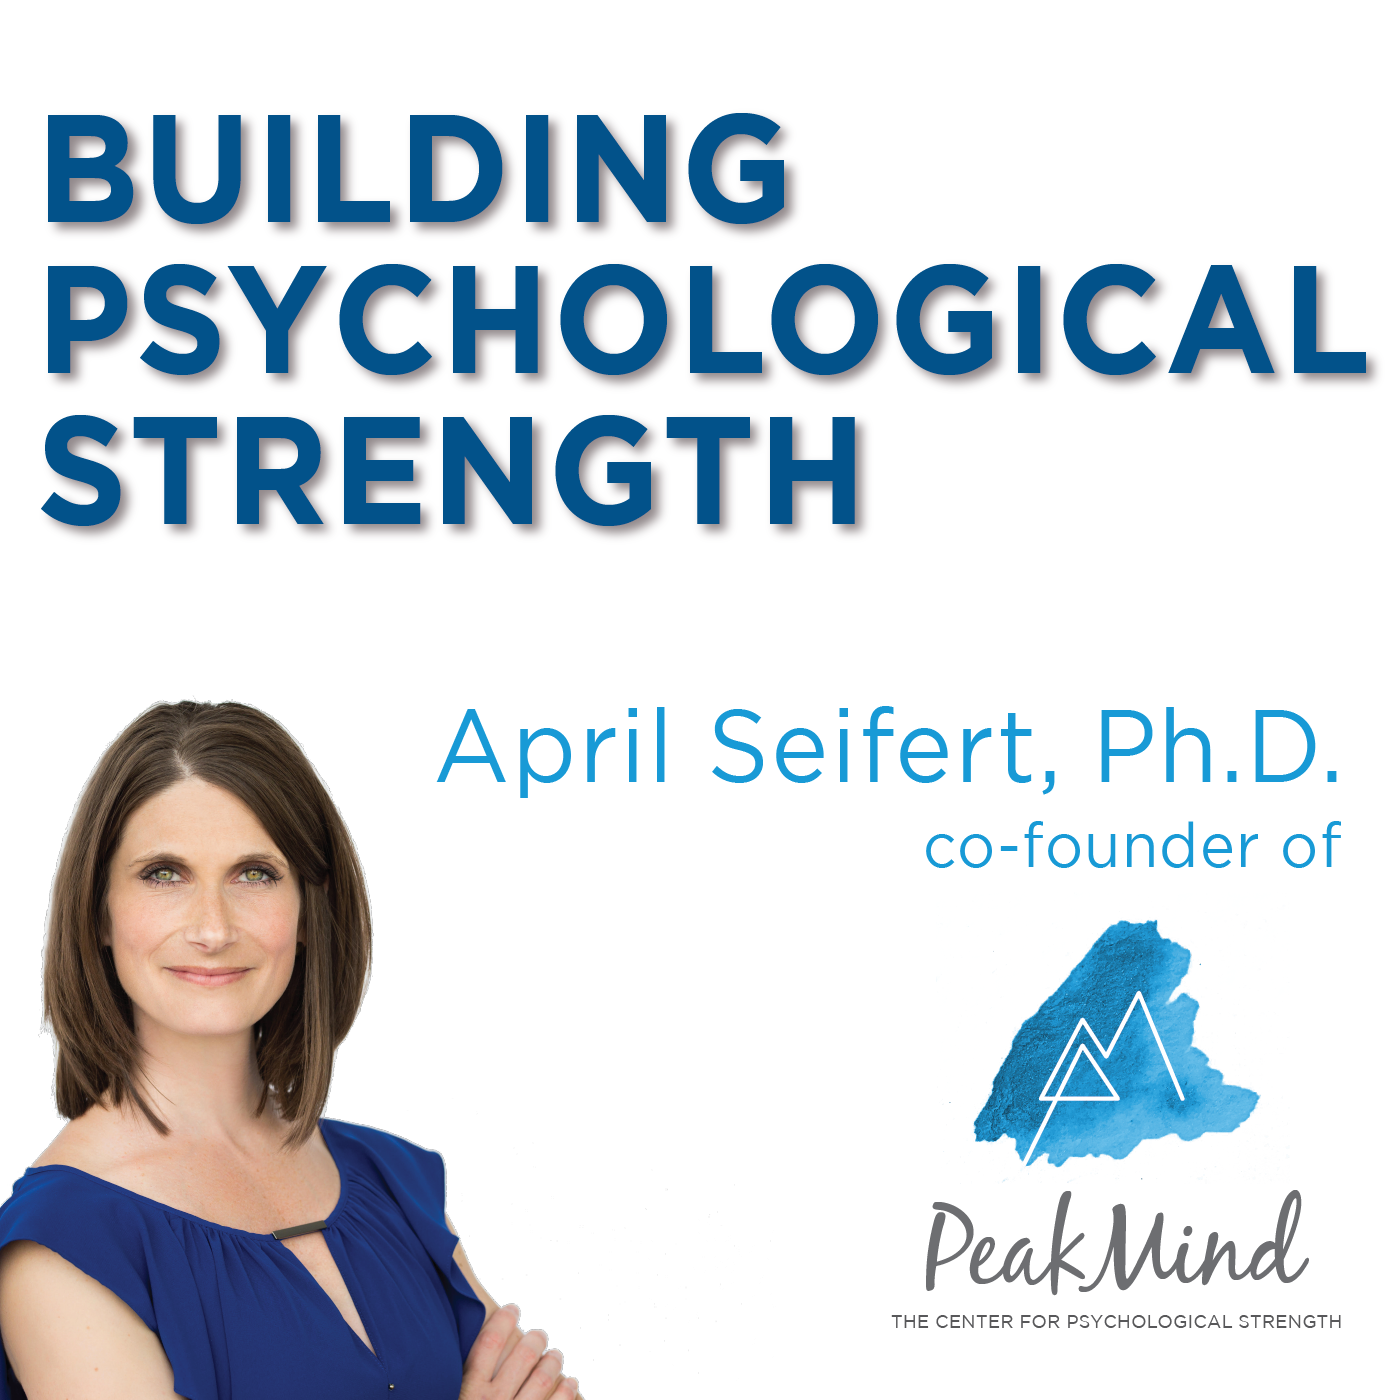 What is psychological strength?